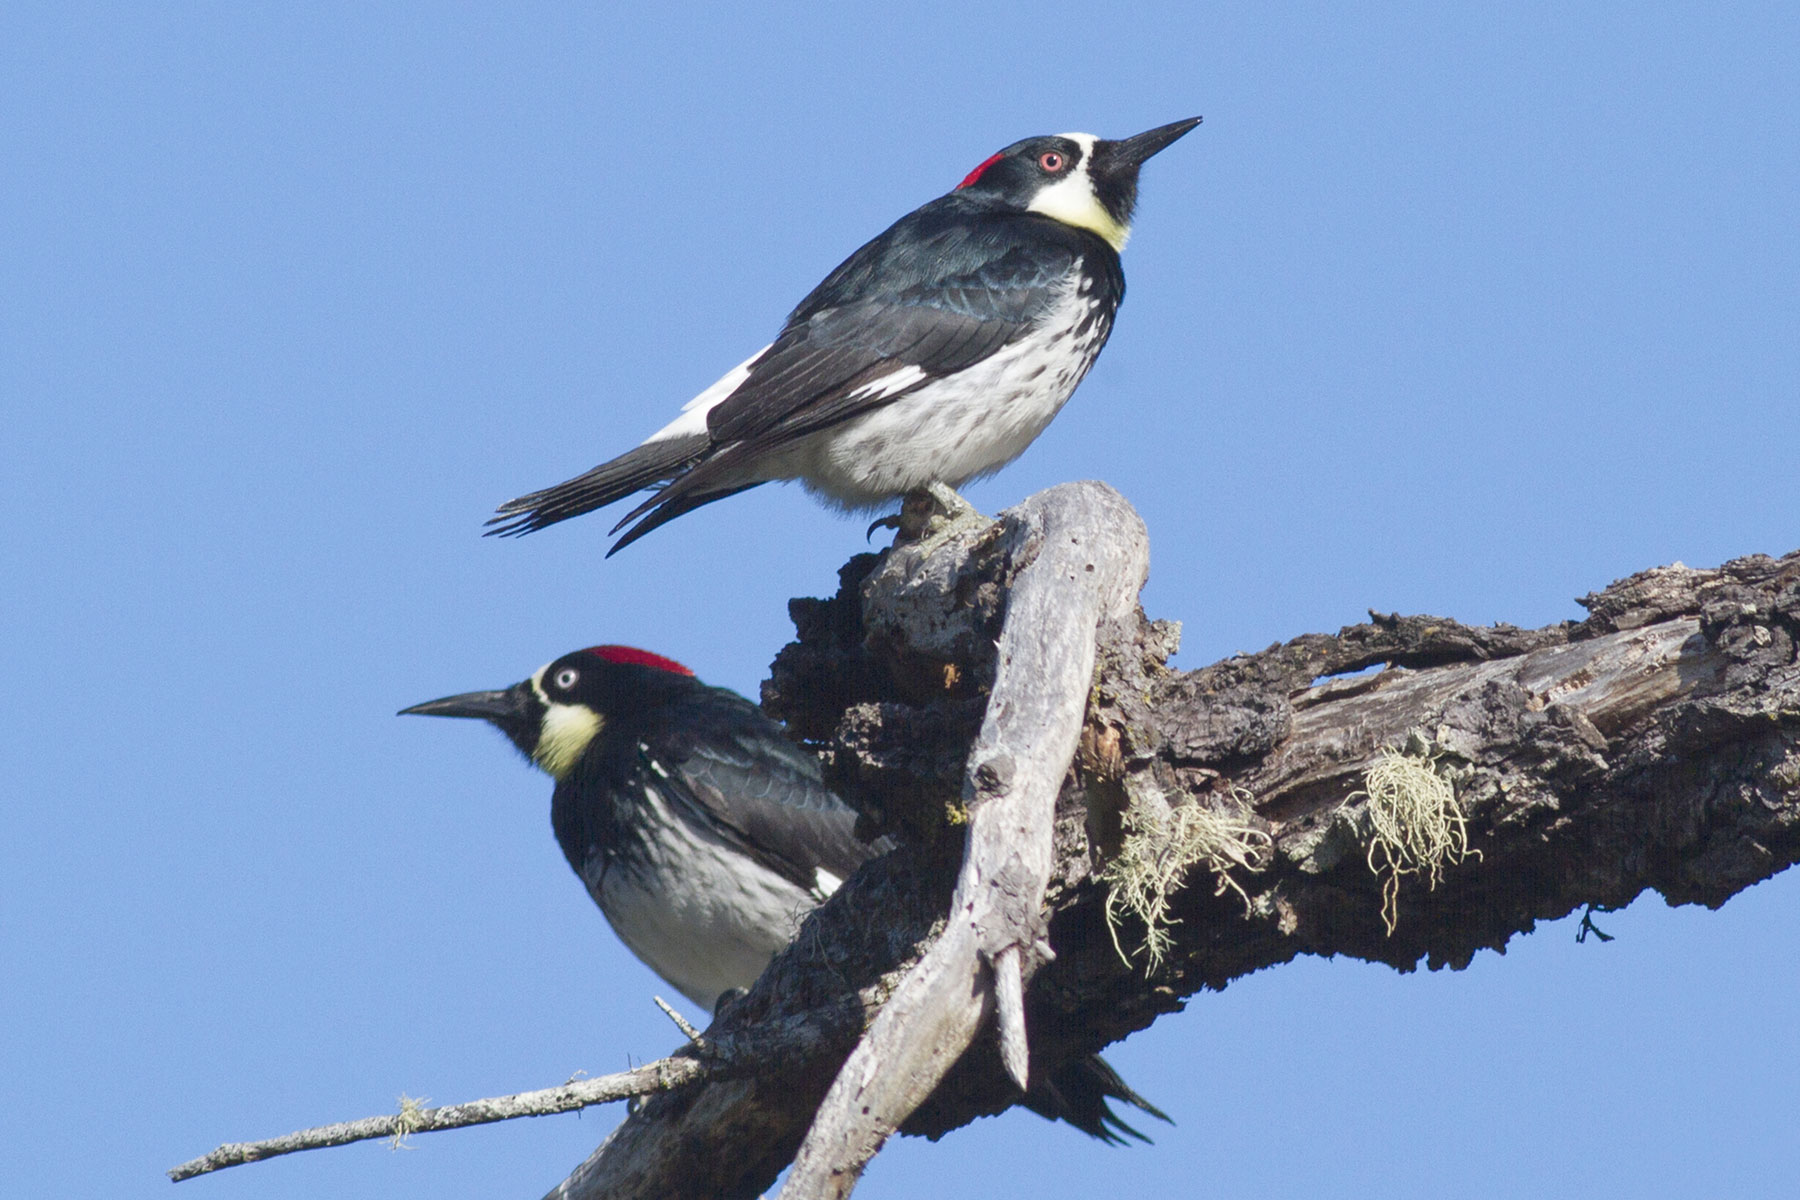 two woodpeckers on a branch against a blue sky